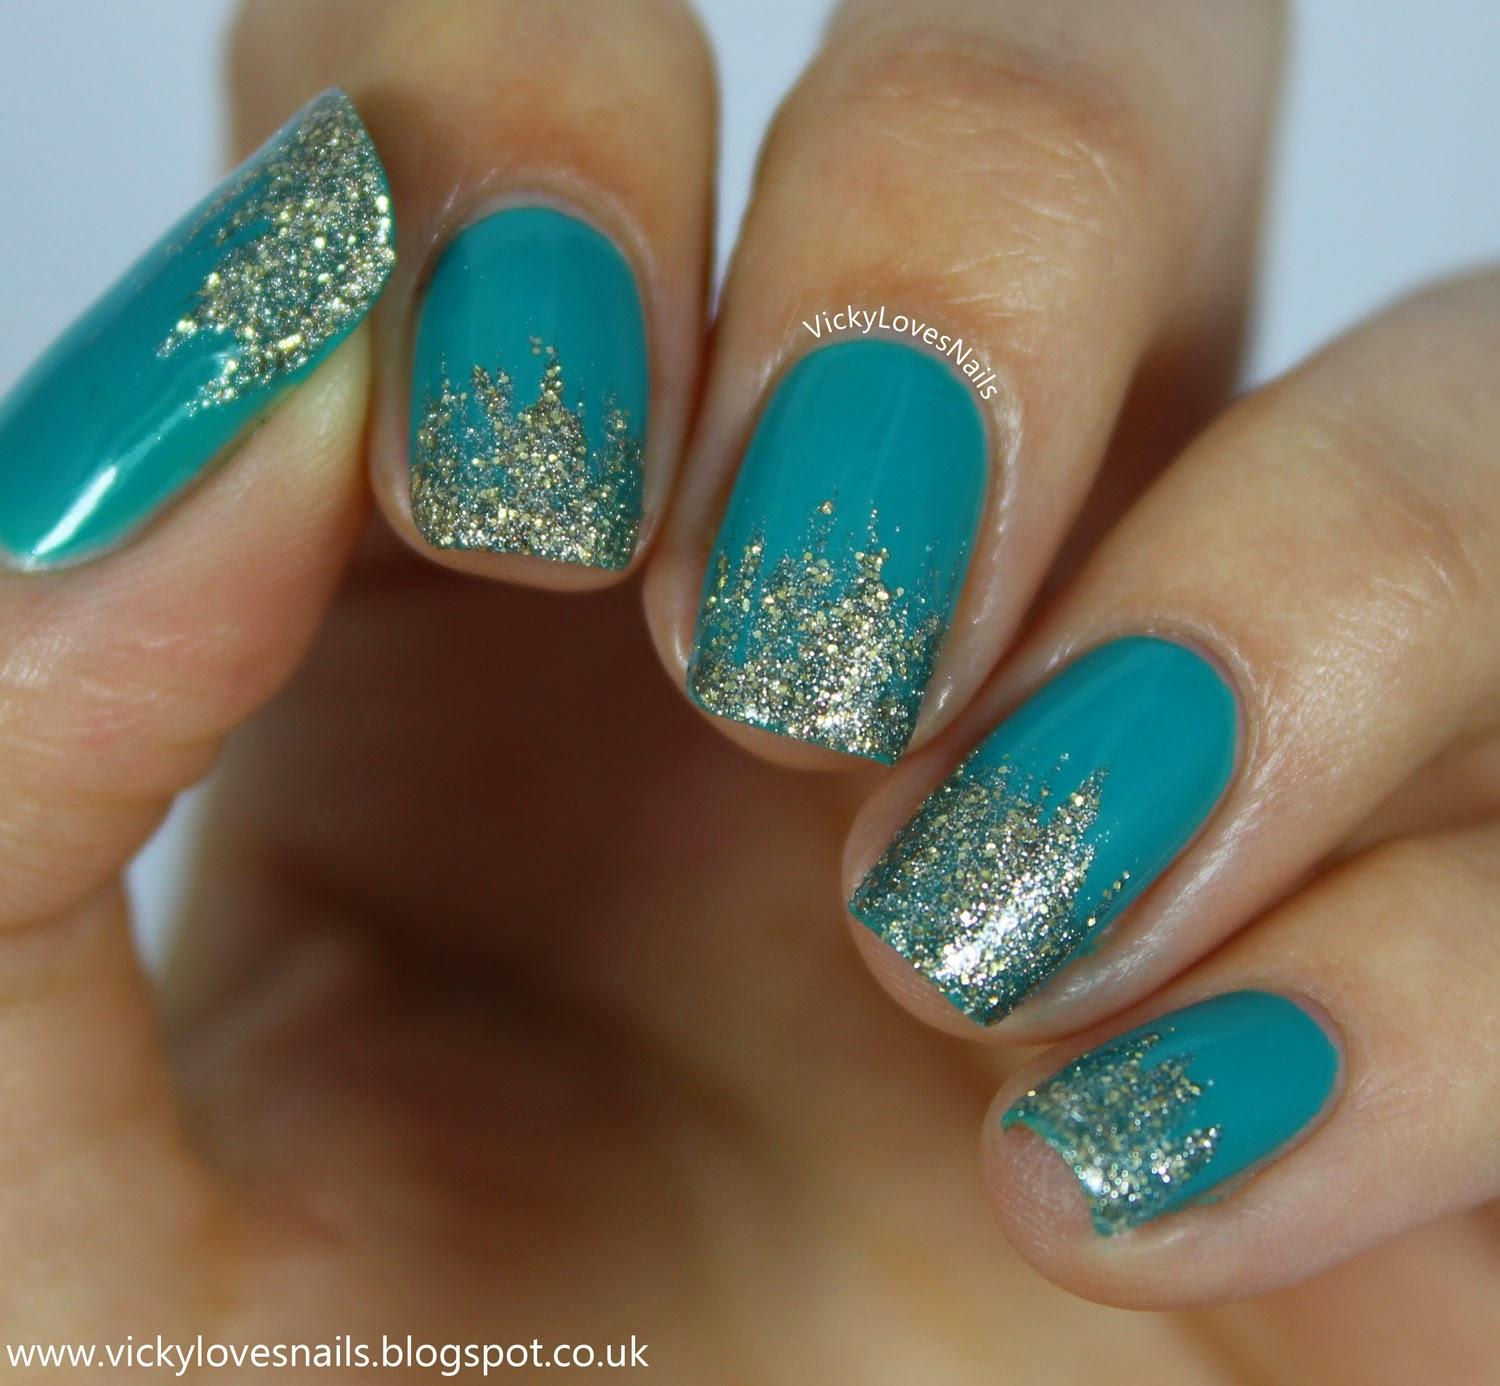 Vicky Loves Nails!: Teal and Gold Glitter Tips